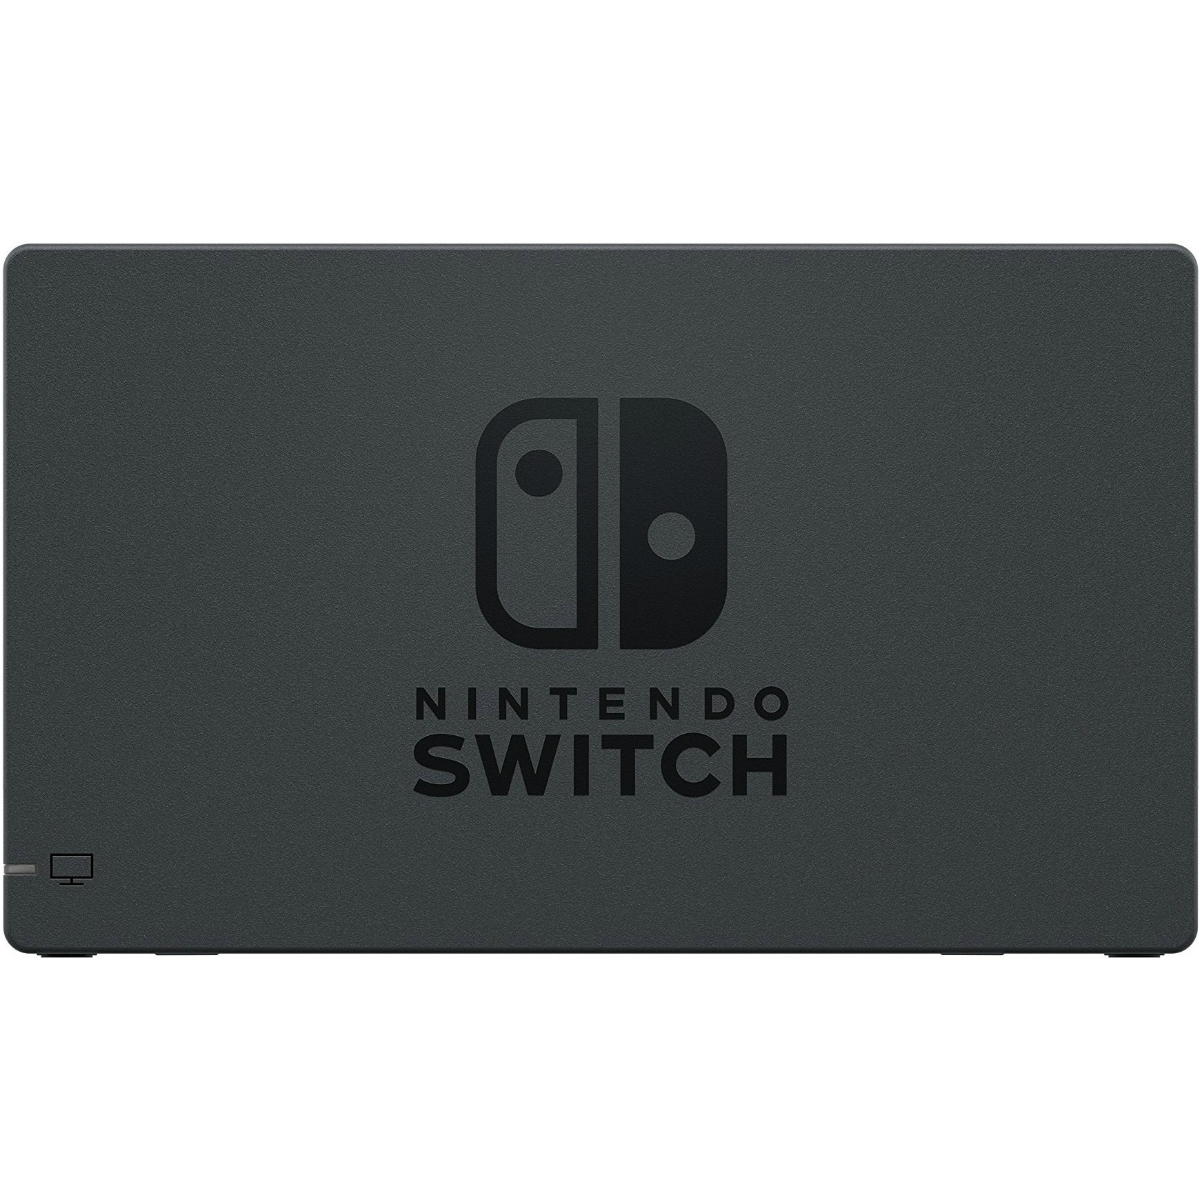 Nintendo Switch Set base